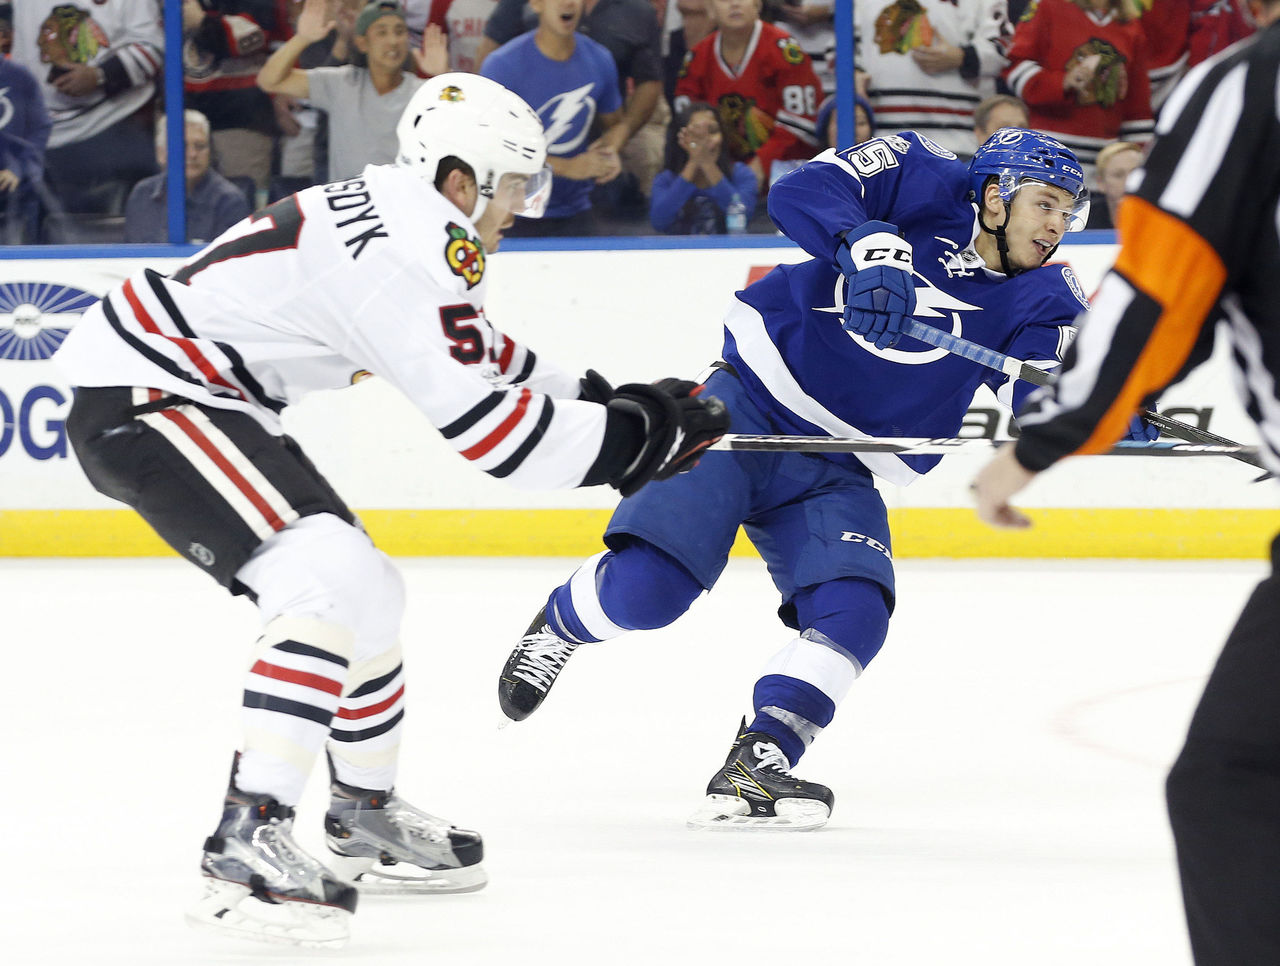 Cropped 2017 03 28t024559z 346268209 nocid rtrmadp 3 nhl chicago blackhawks at tampa bay lightning